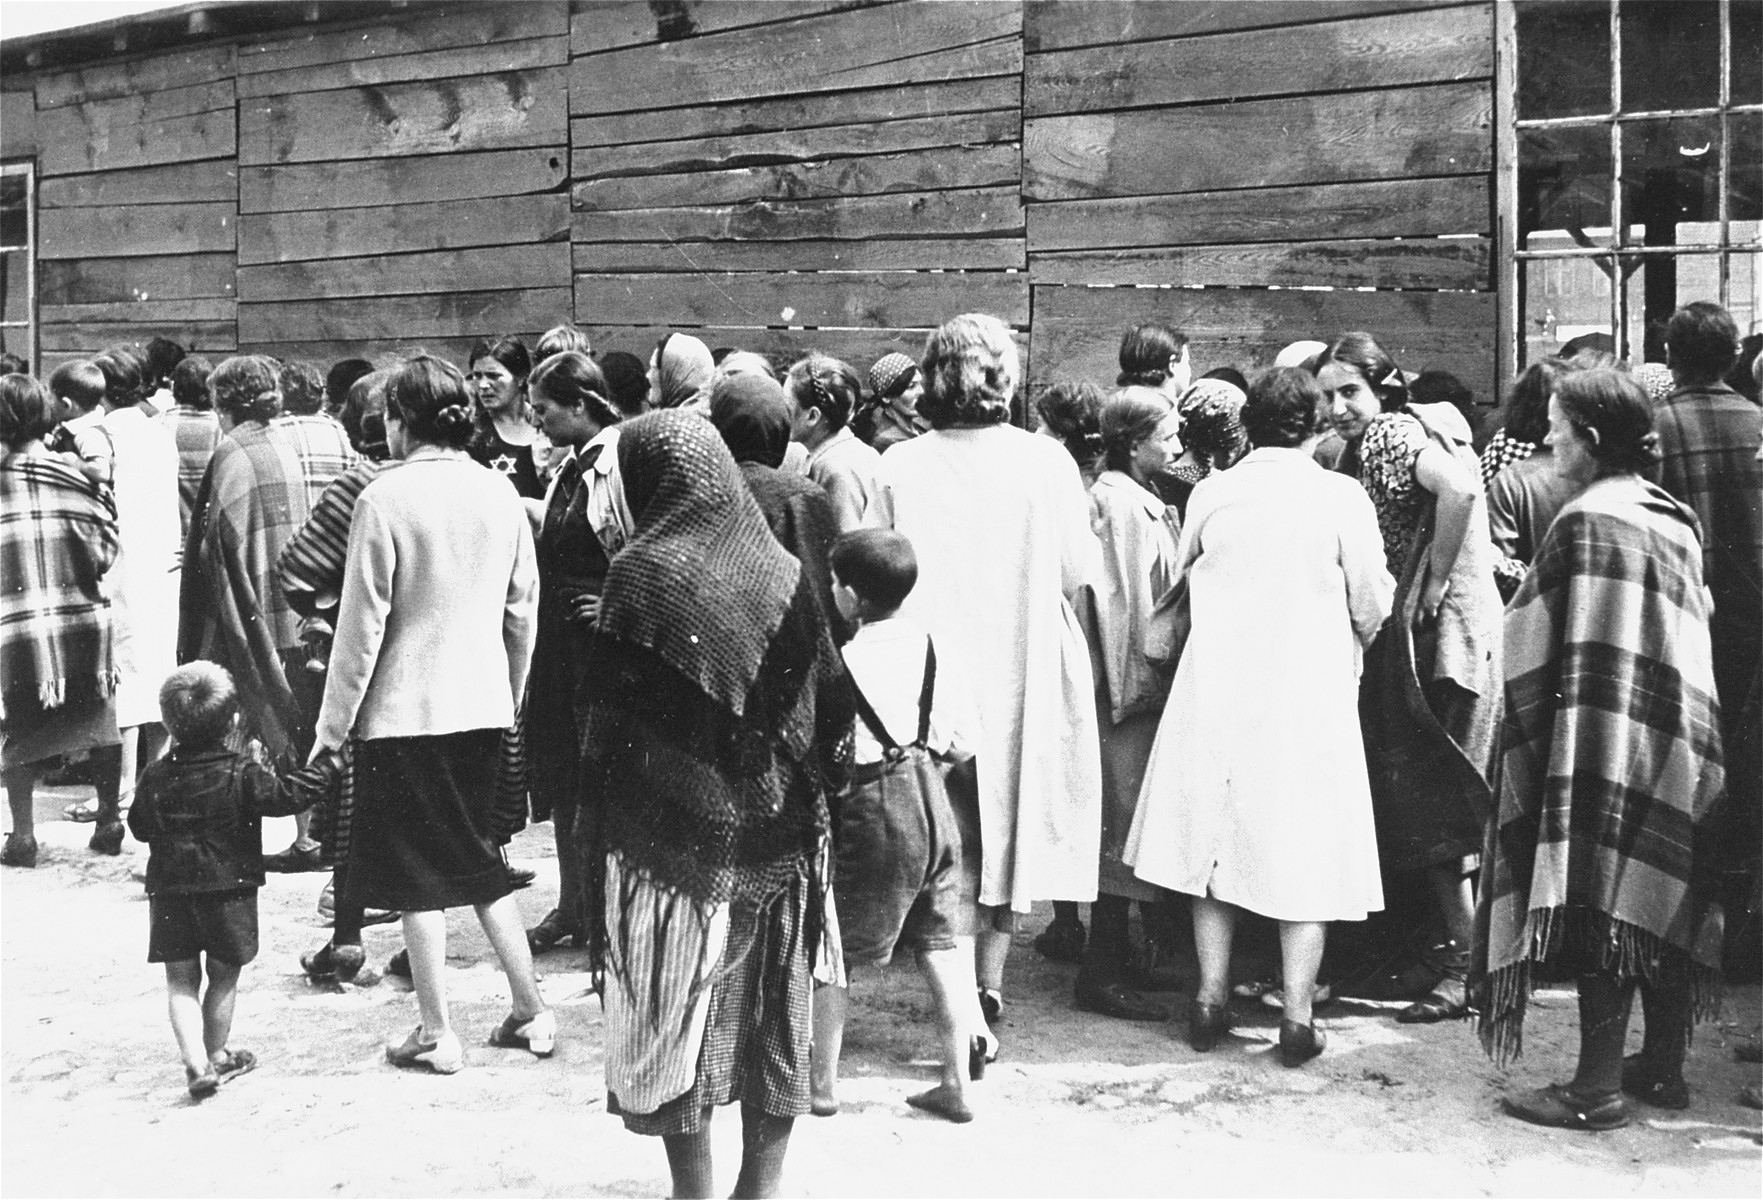 Jewish women and children are gathered outside a wooden barracks in Piotrkow Kujawski.